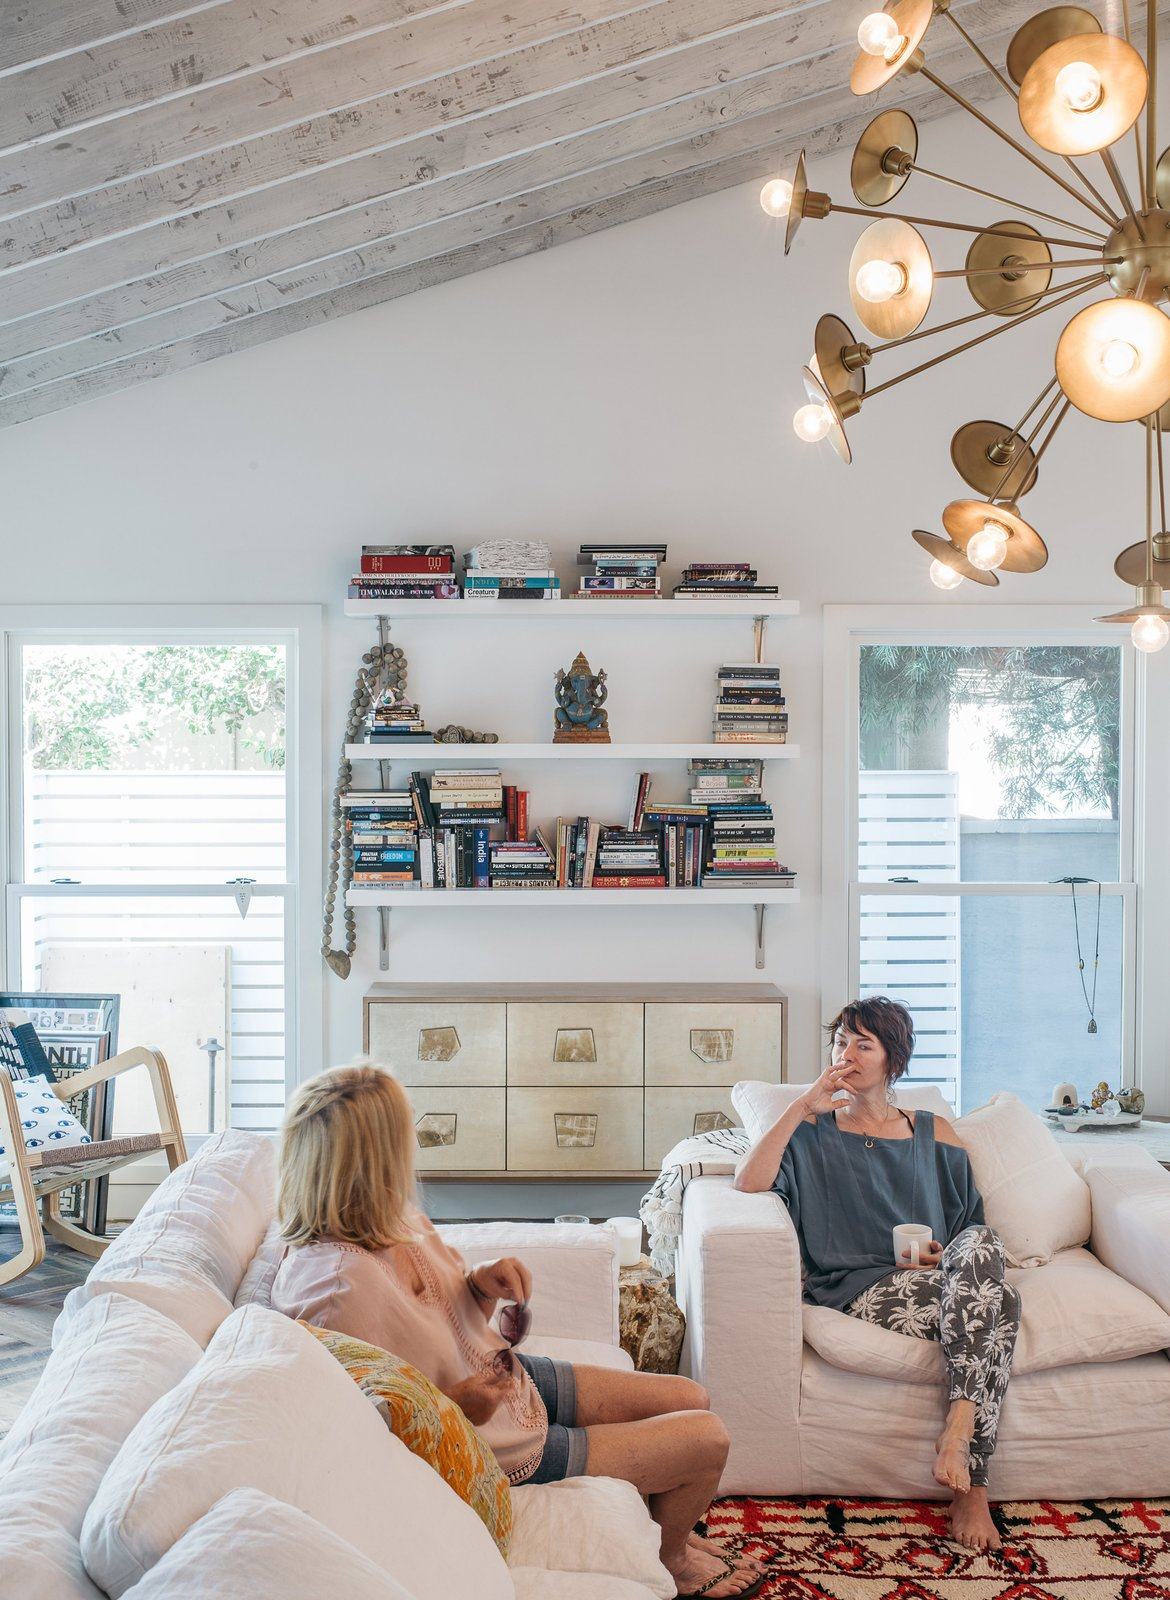 Actress Lena Headey (with her mother, Susan) worked with builder Ted Broden to give her 1950s house an open feel. The living room includes a Cloud Track Arm sofa and chair from Restoration Hardware, a Woven Accents rug, and a Keegan chandelier by Arteriors.